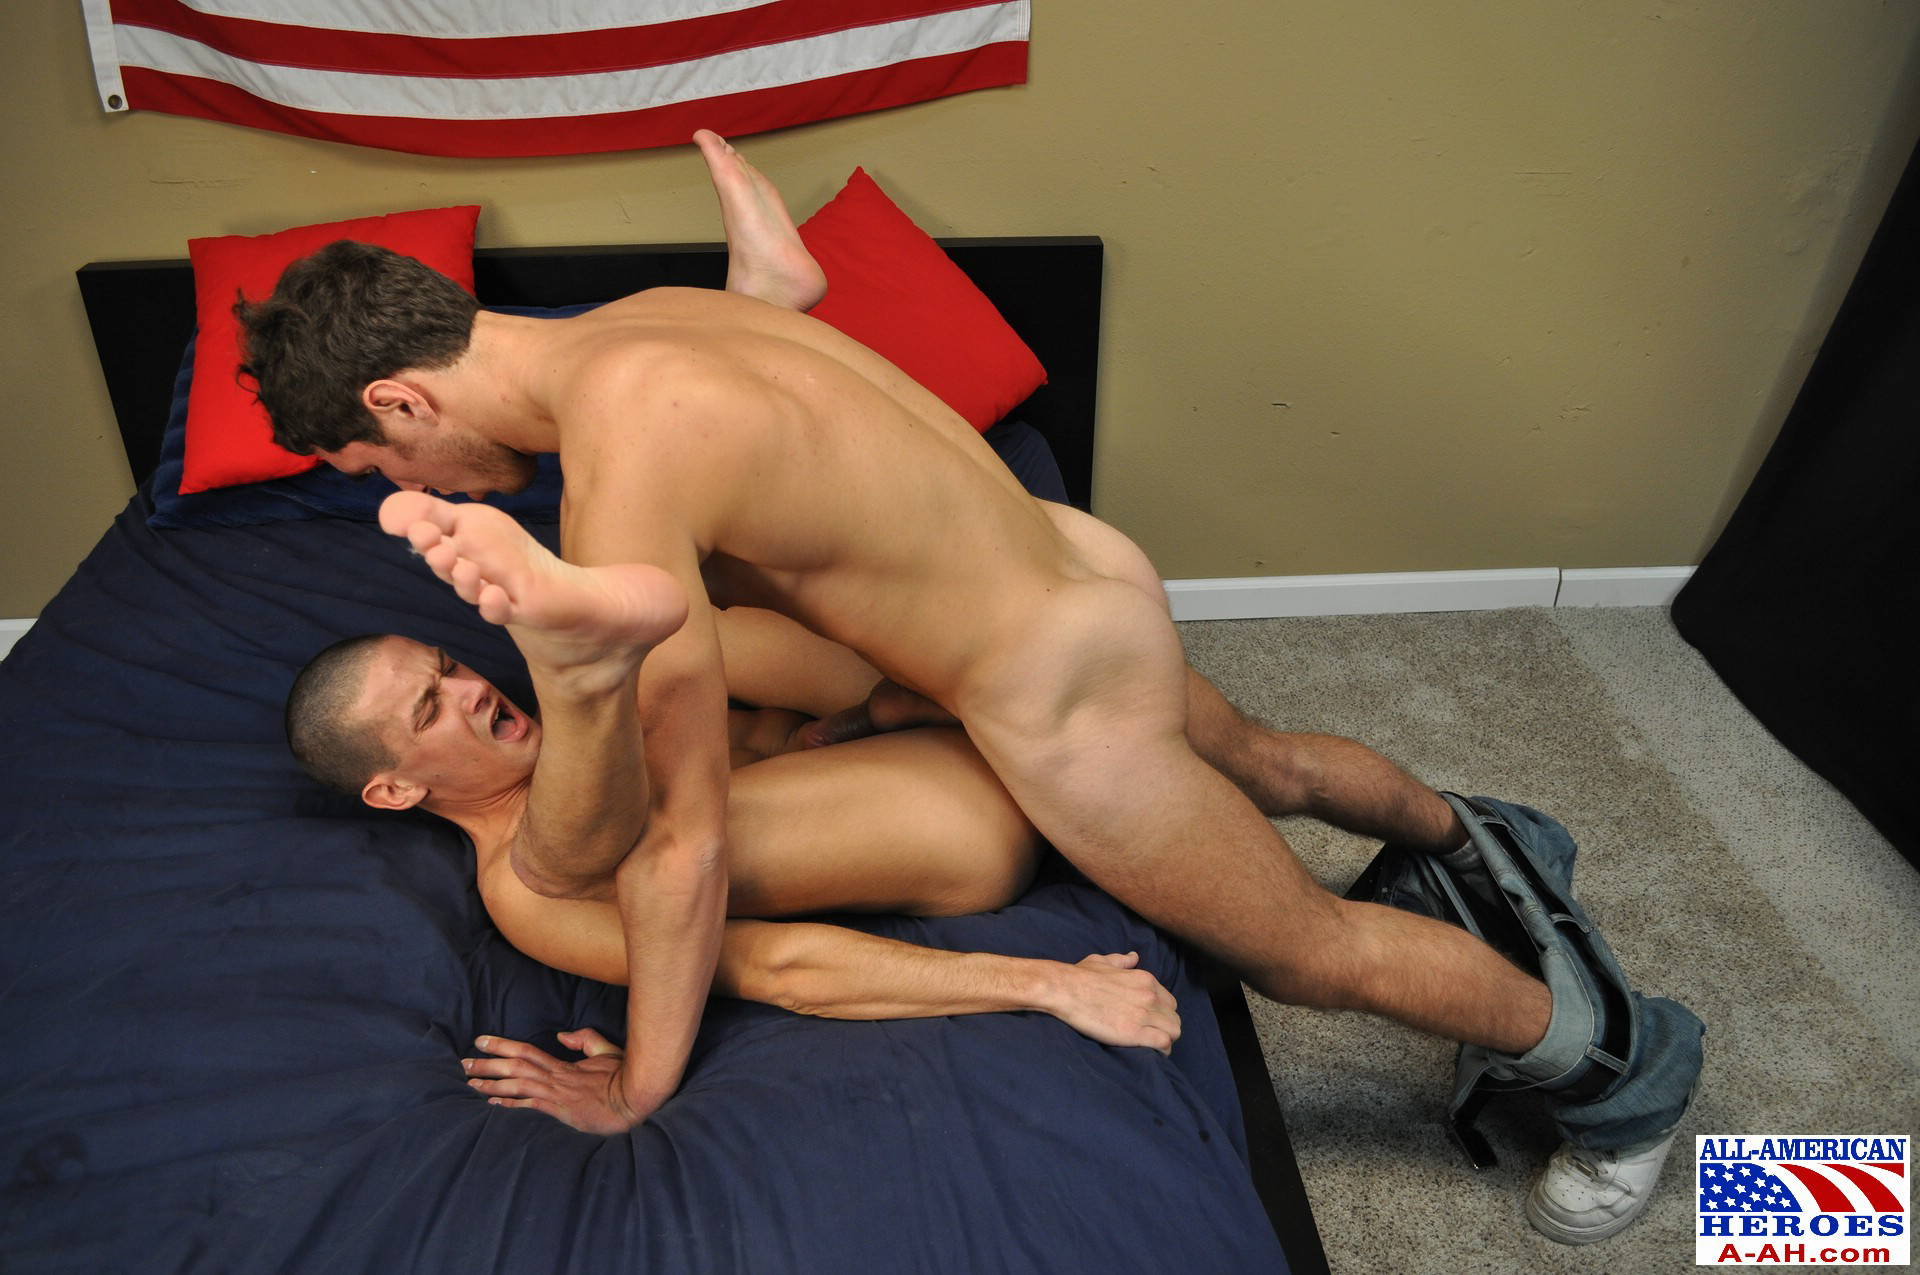 big bslls gay guy fucks guy